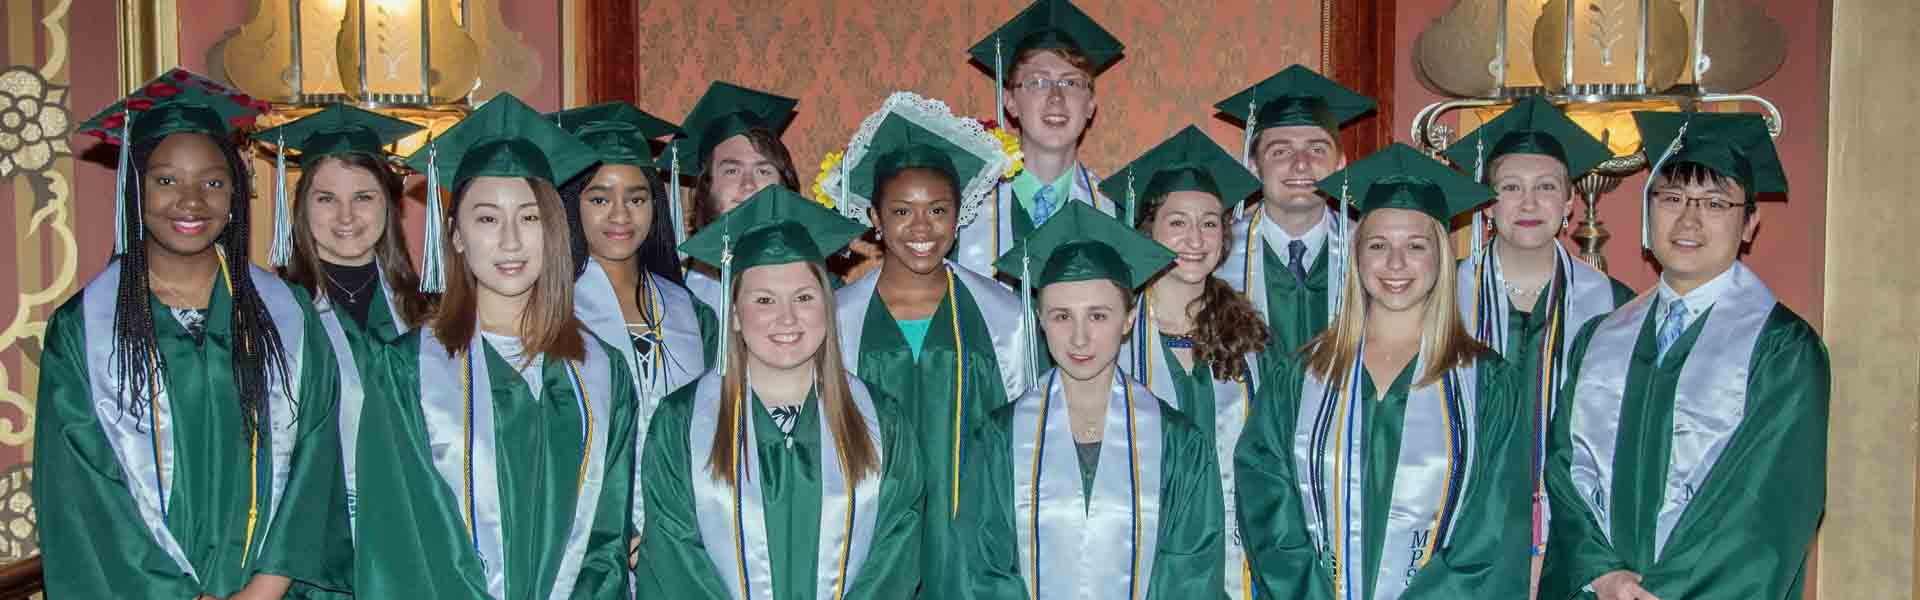 Mercyhurst Pennsylvania USA Graduation2 Banner 2019